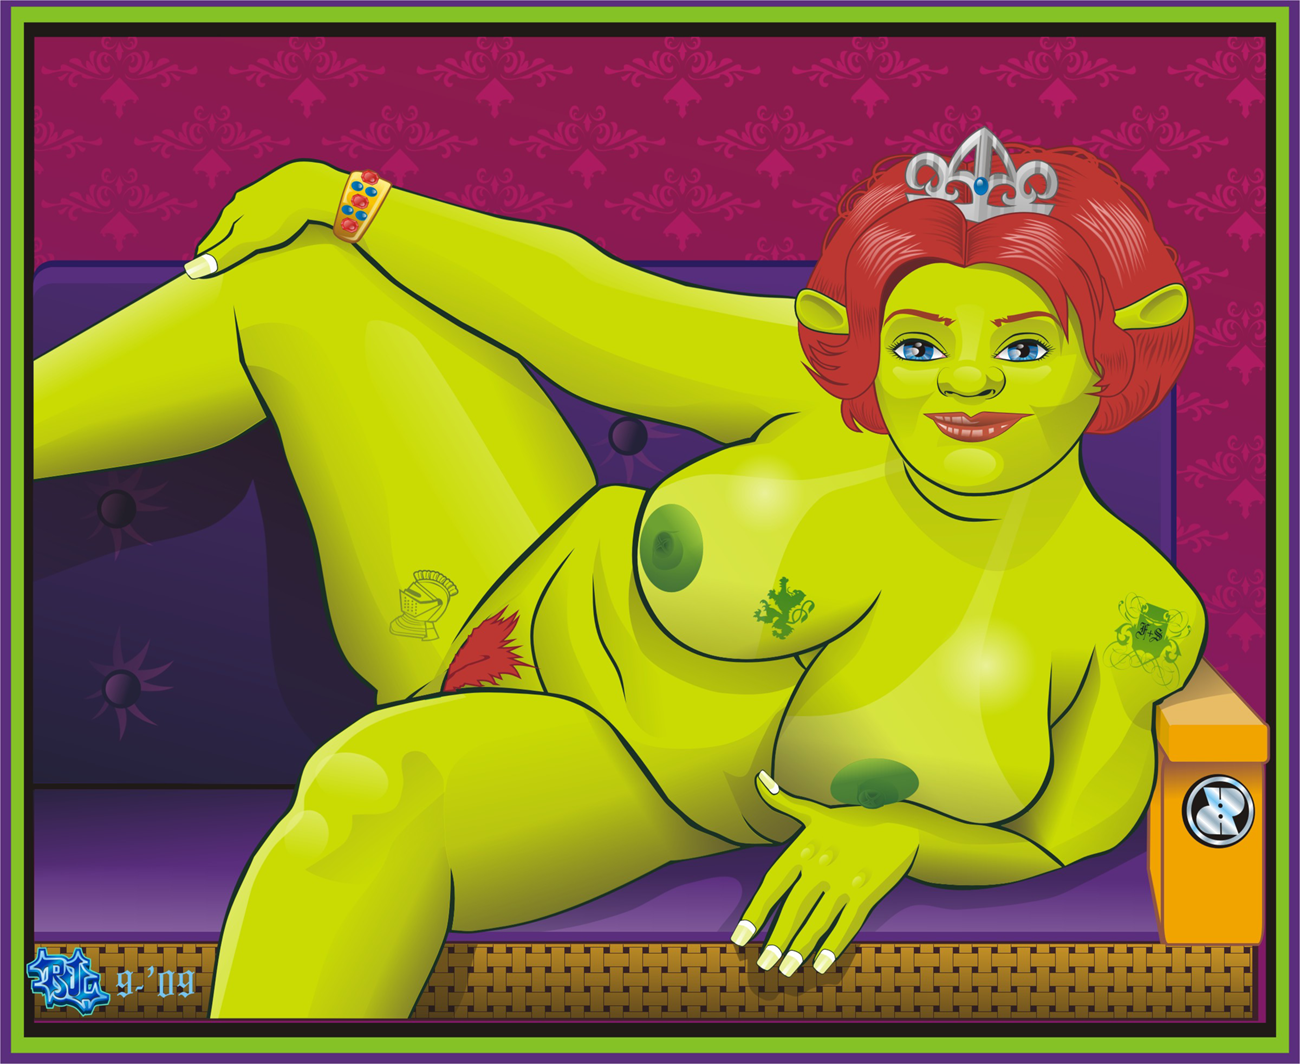 Shrek sex pic erotica movie